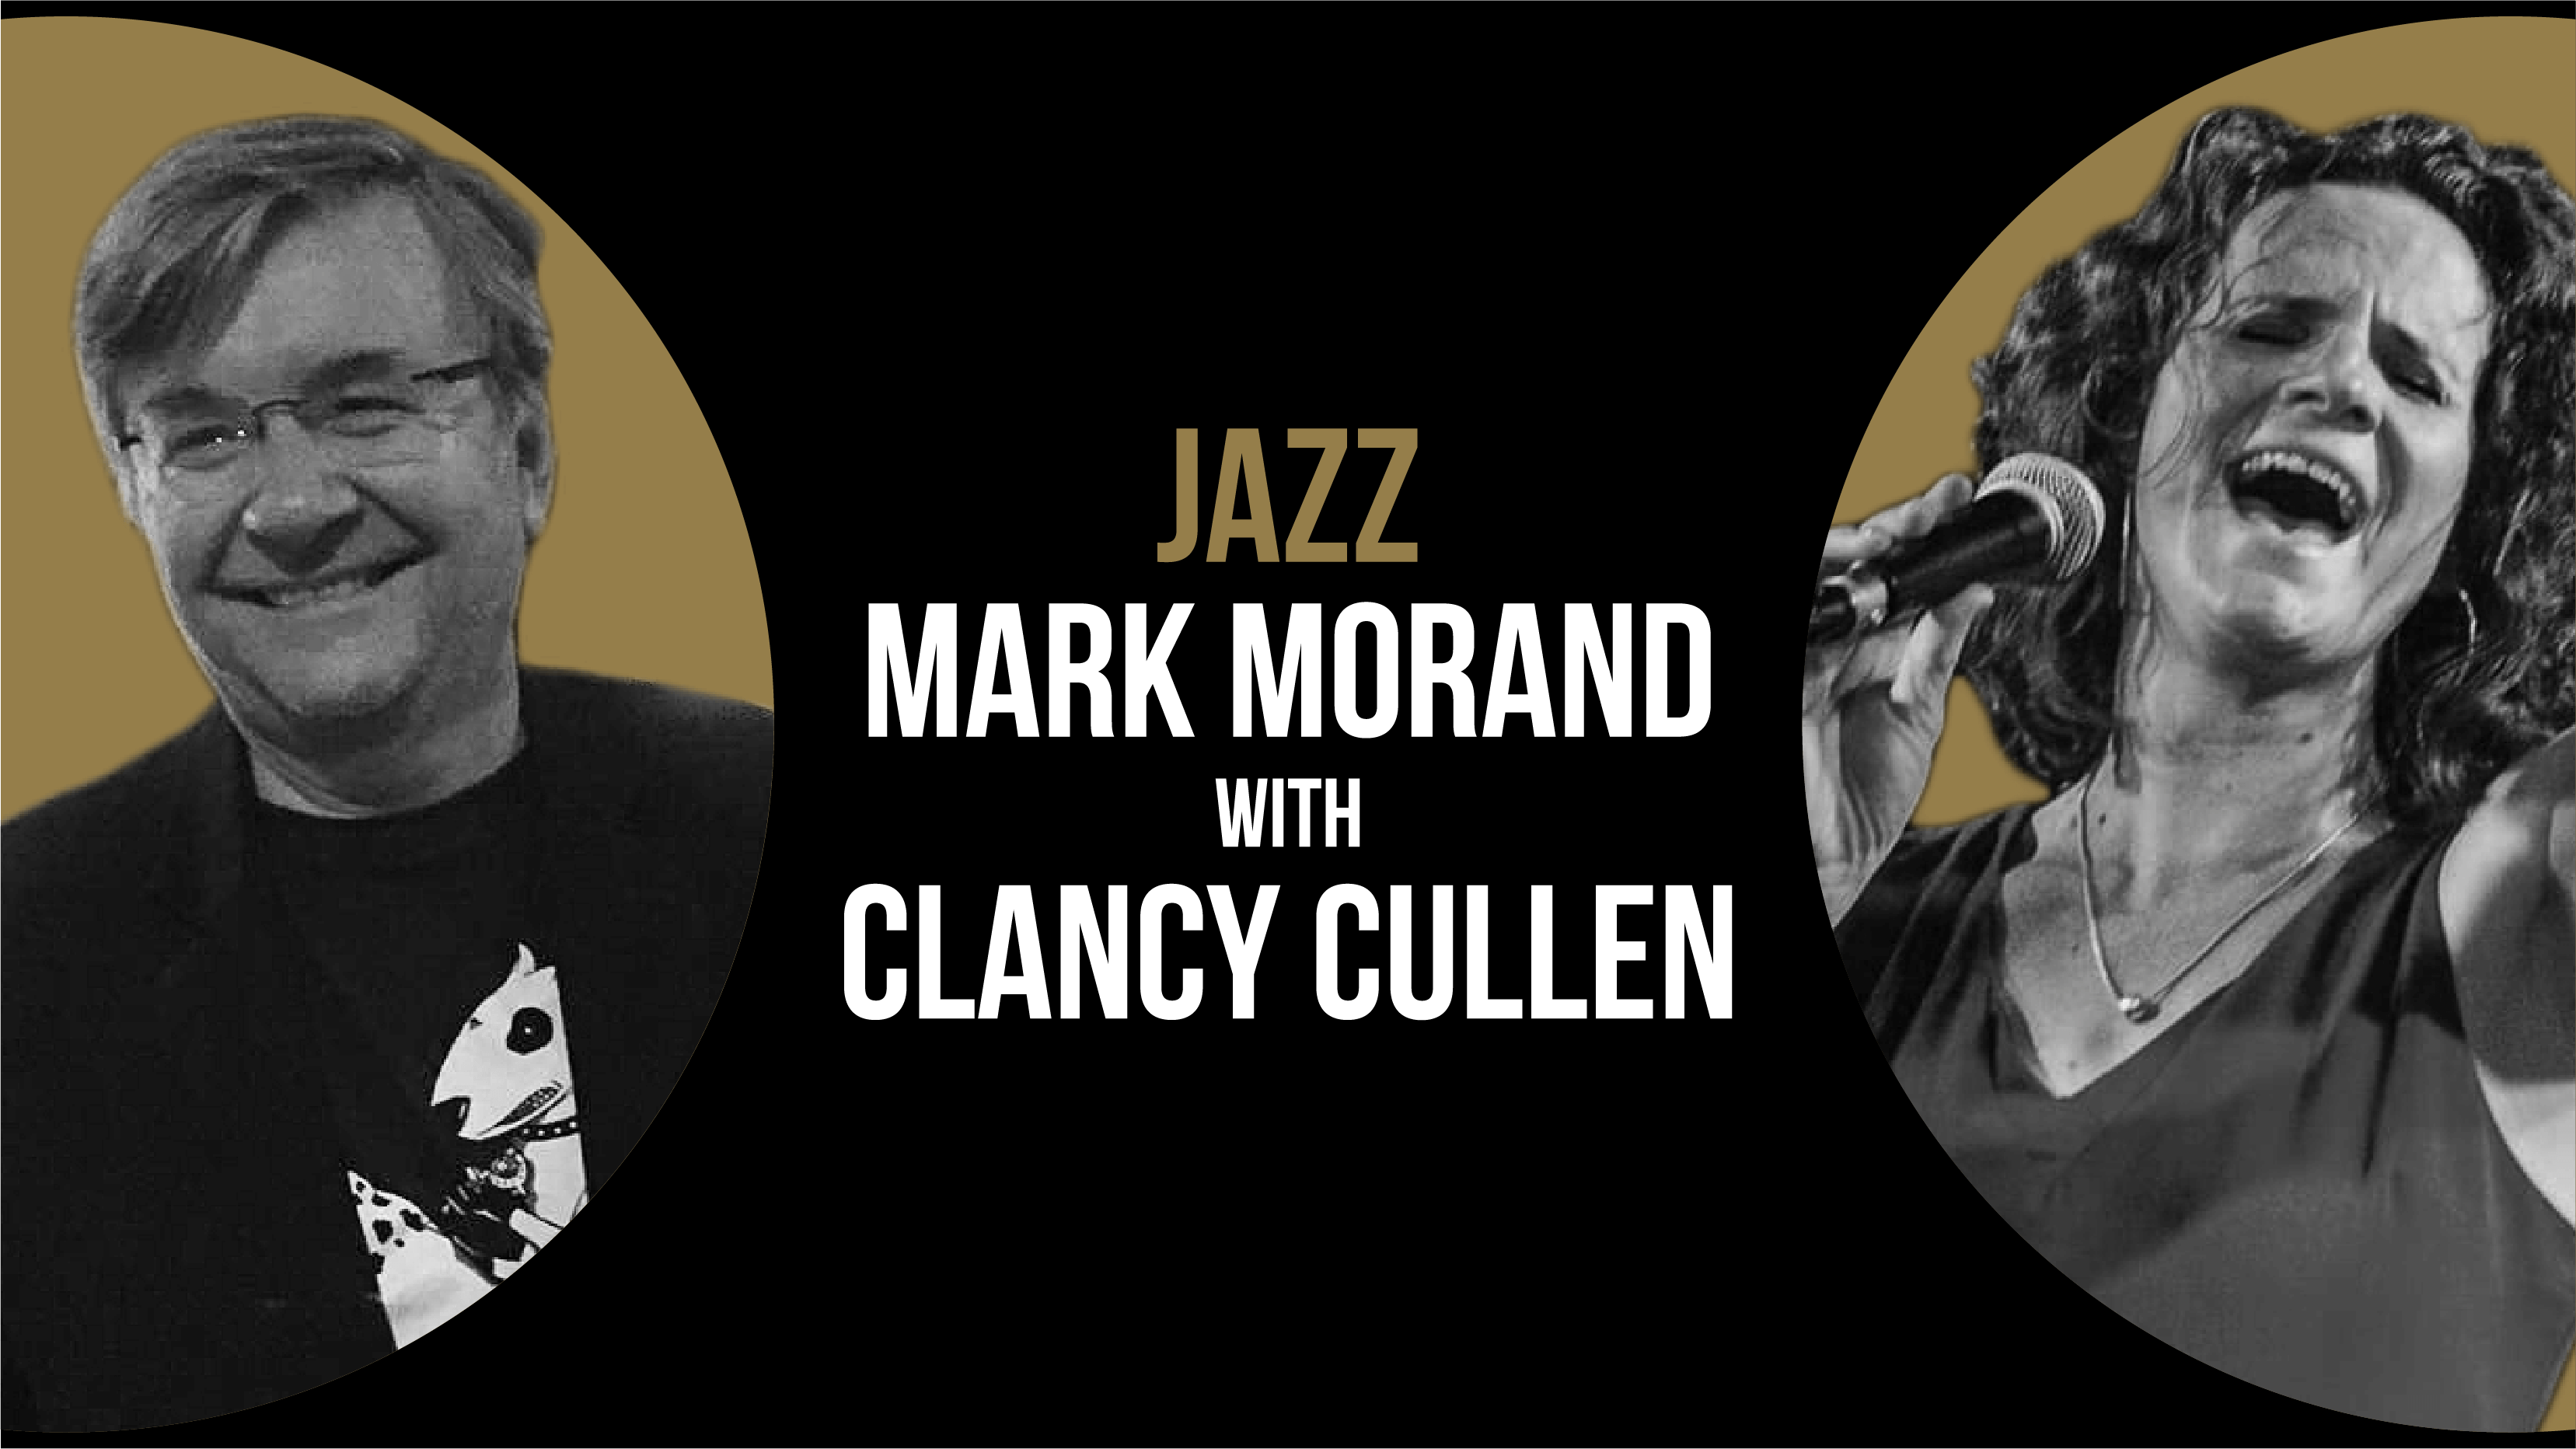 Jazz with Mark Morand and Clancy Cullen